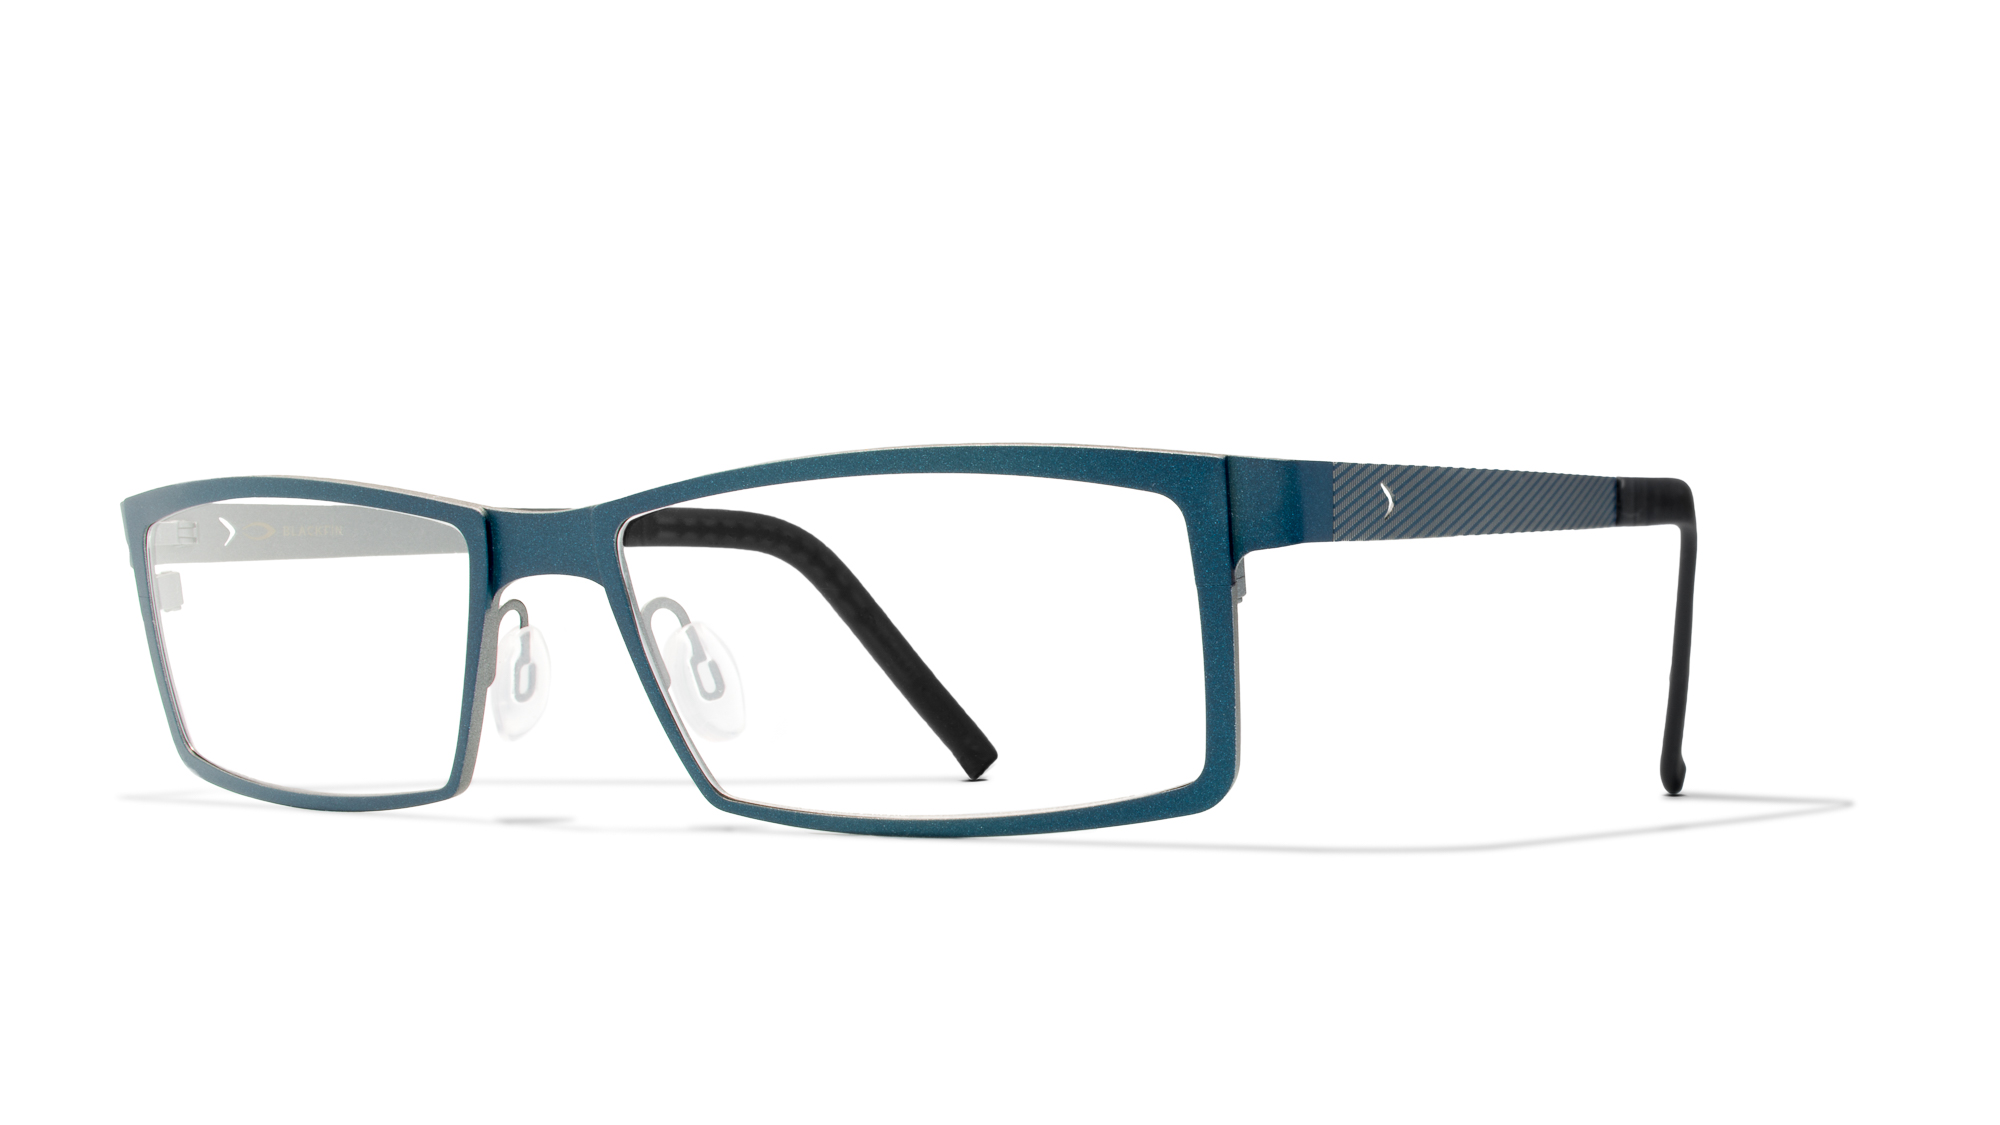 34312f6d902 View a selection of our range of Blackfin glasses below